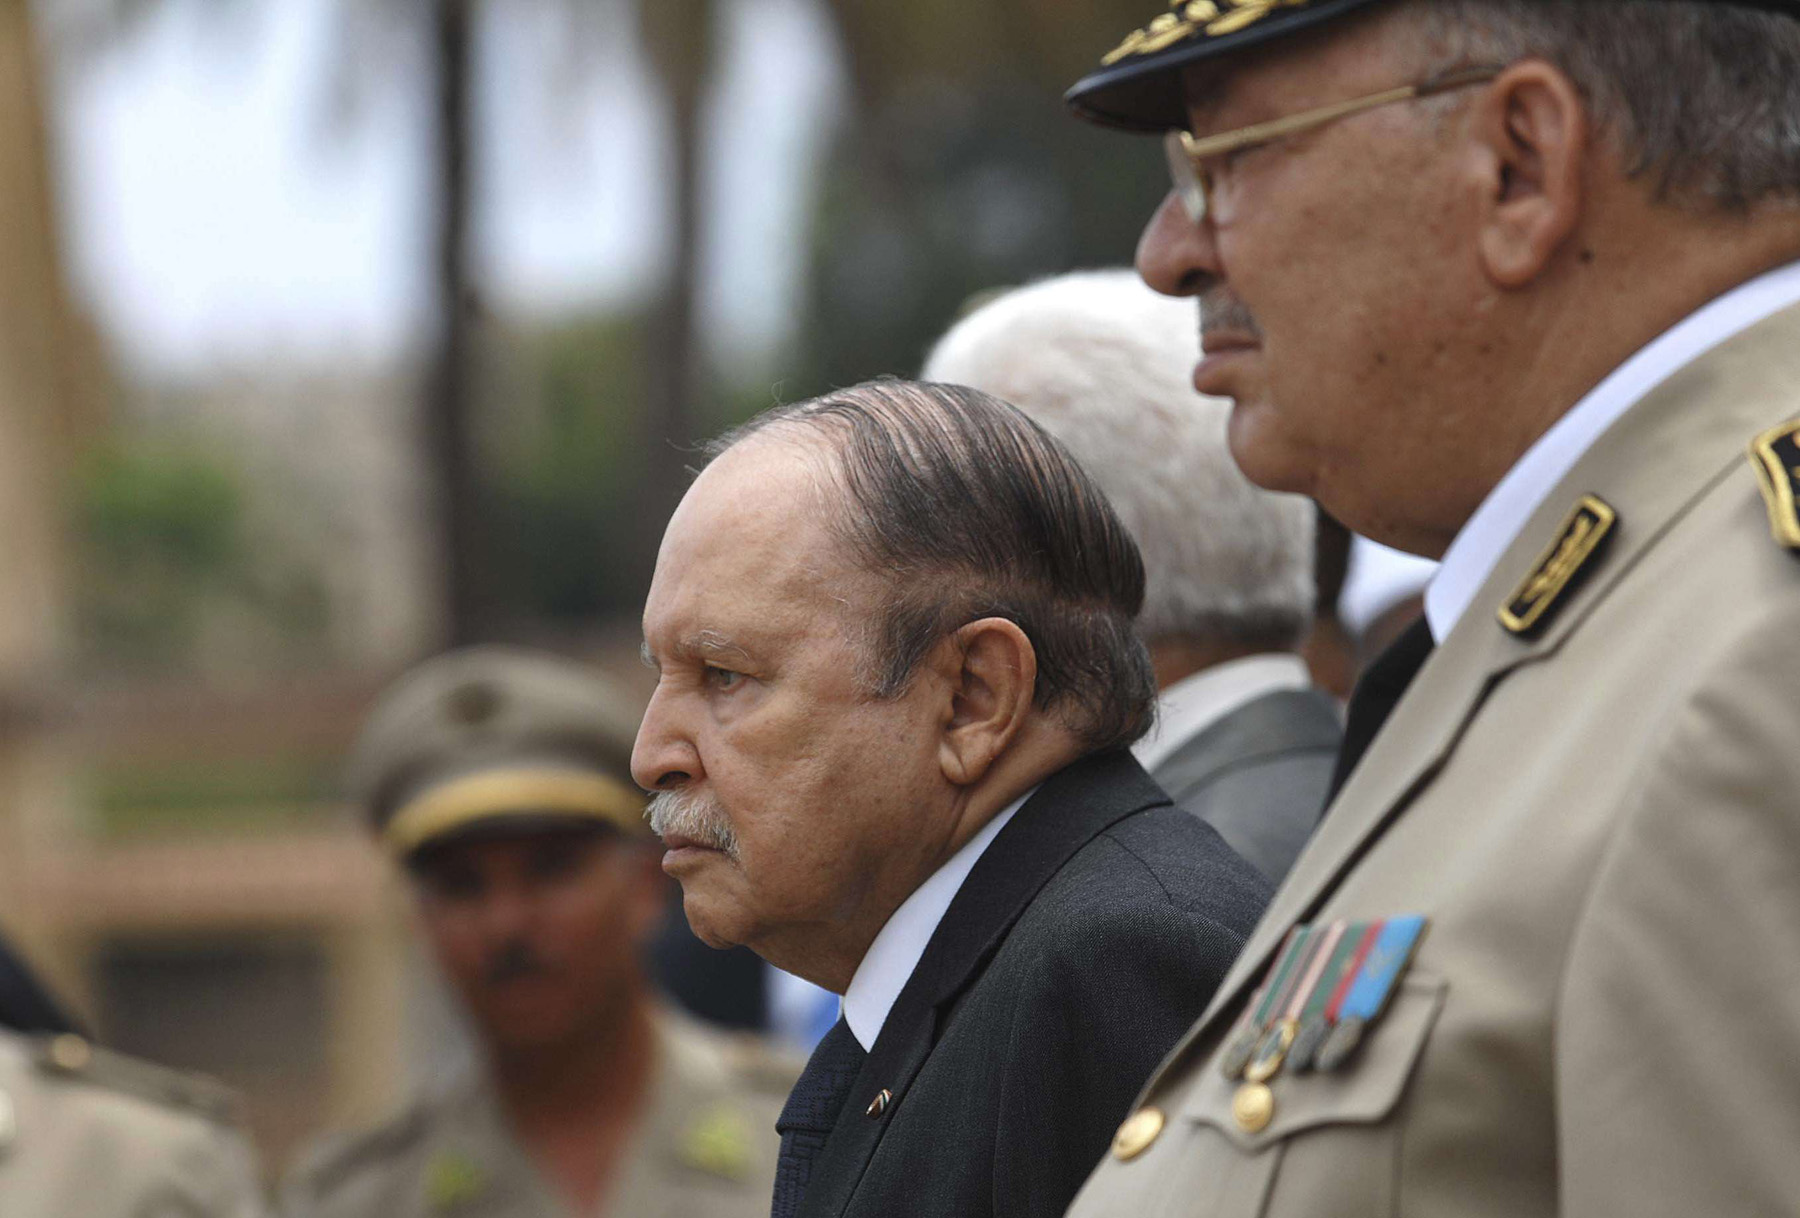 Closing a chapter. A 2012 file picture shows Algerian President Abdelaziz Bouteflika (L) and Army Chief of Staff General Ahmed Gaid Salah reviewing an honour guard near Algiers. (AP)